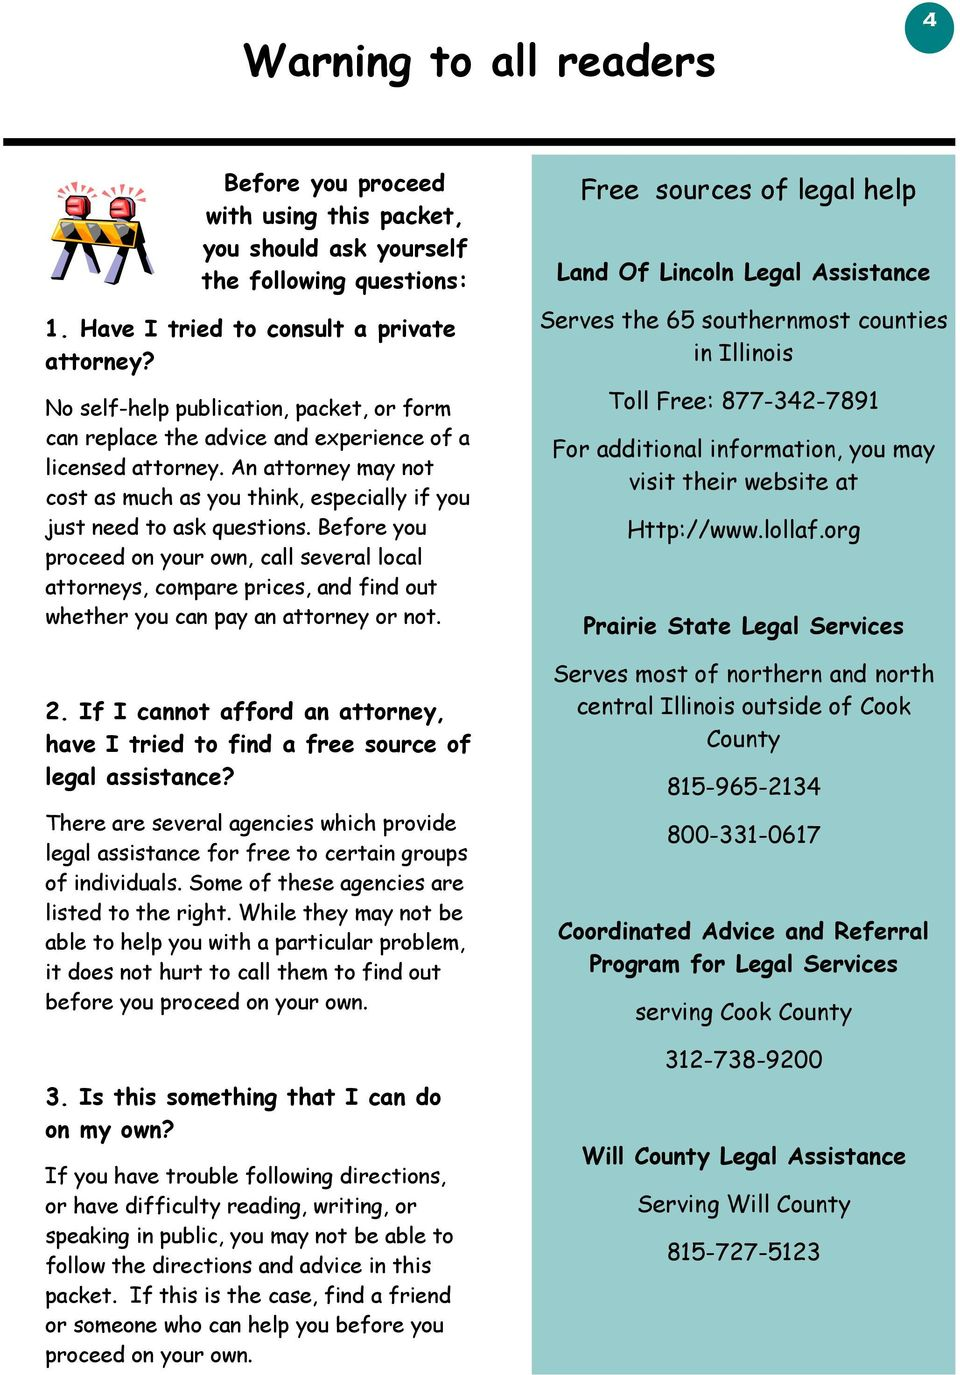 Before you proceed on your own, call several local attorneys, compare prices, and find out whether you can pay an attorney or not. 2.